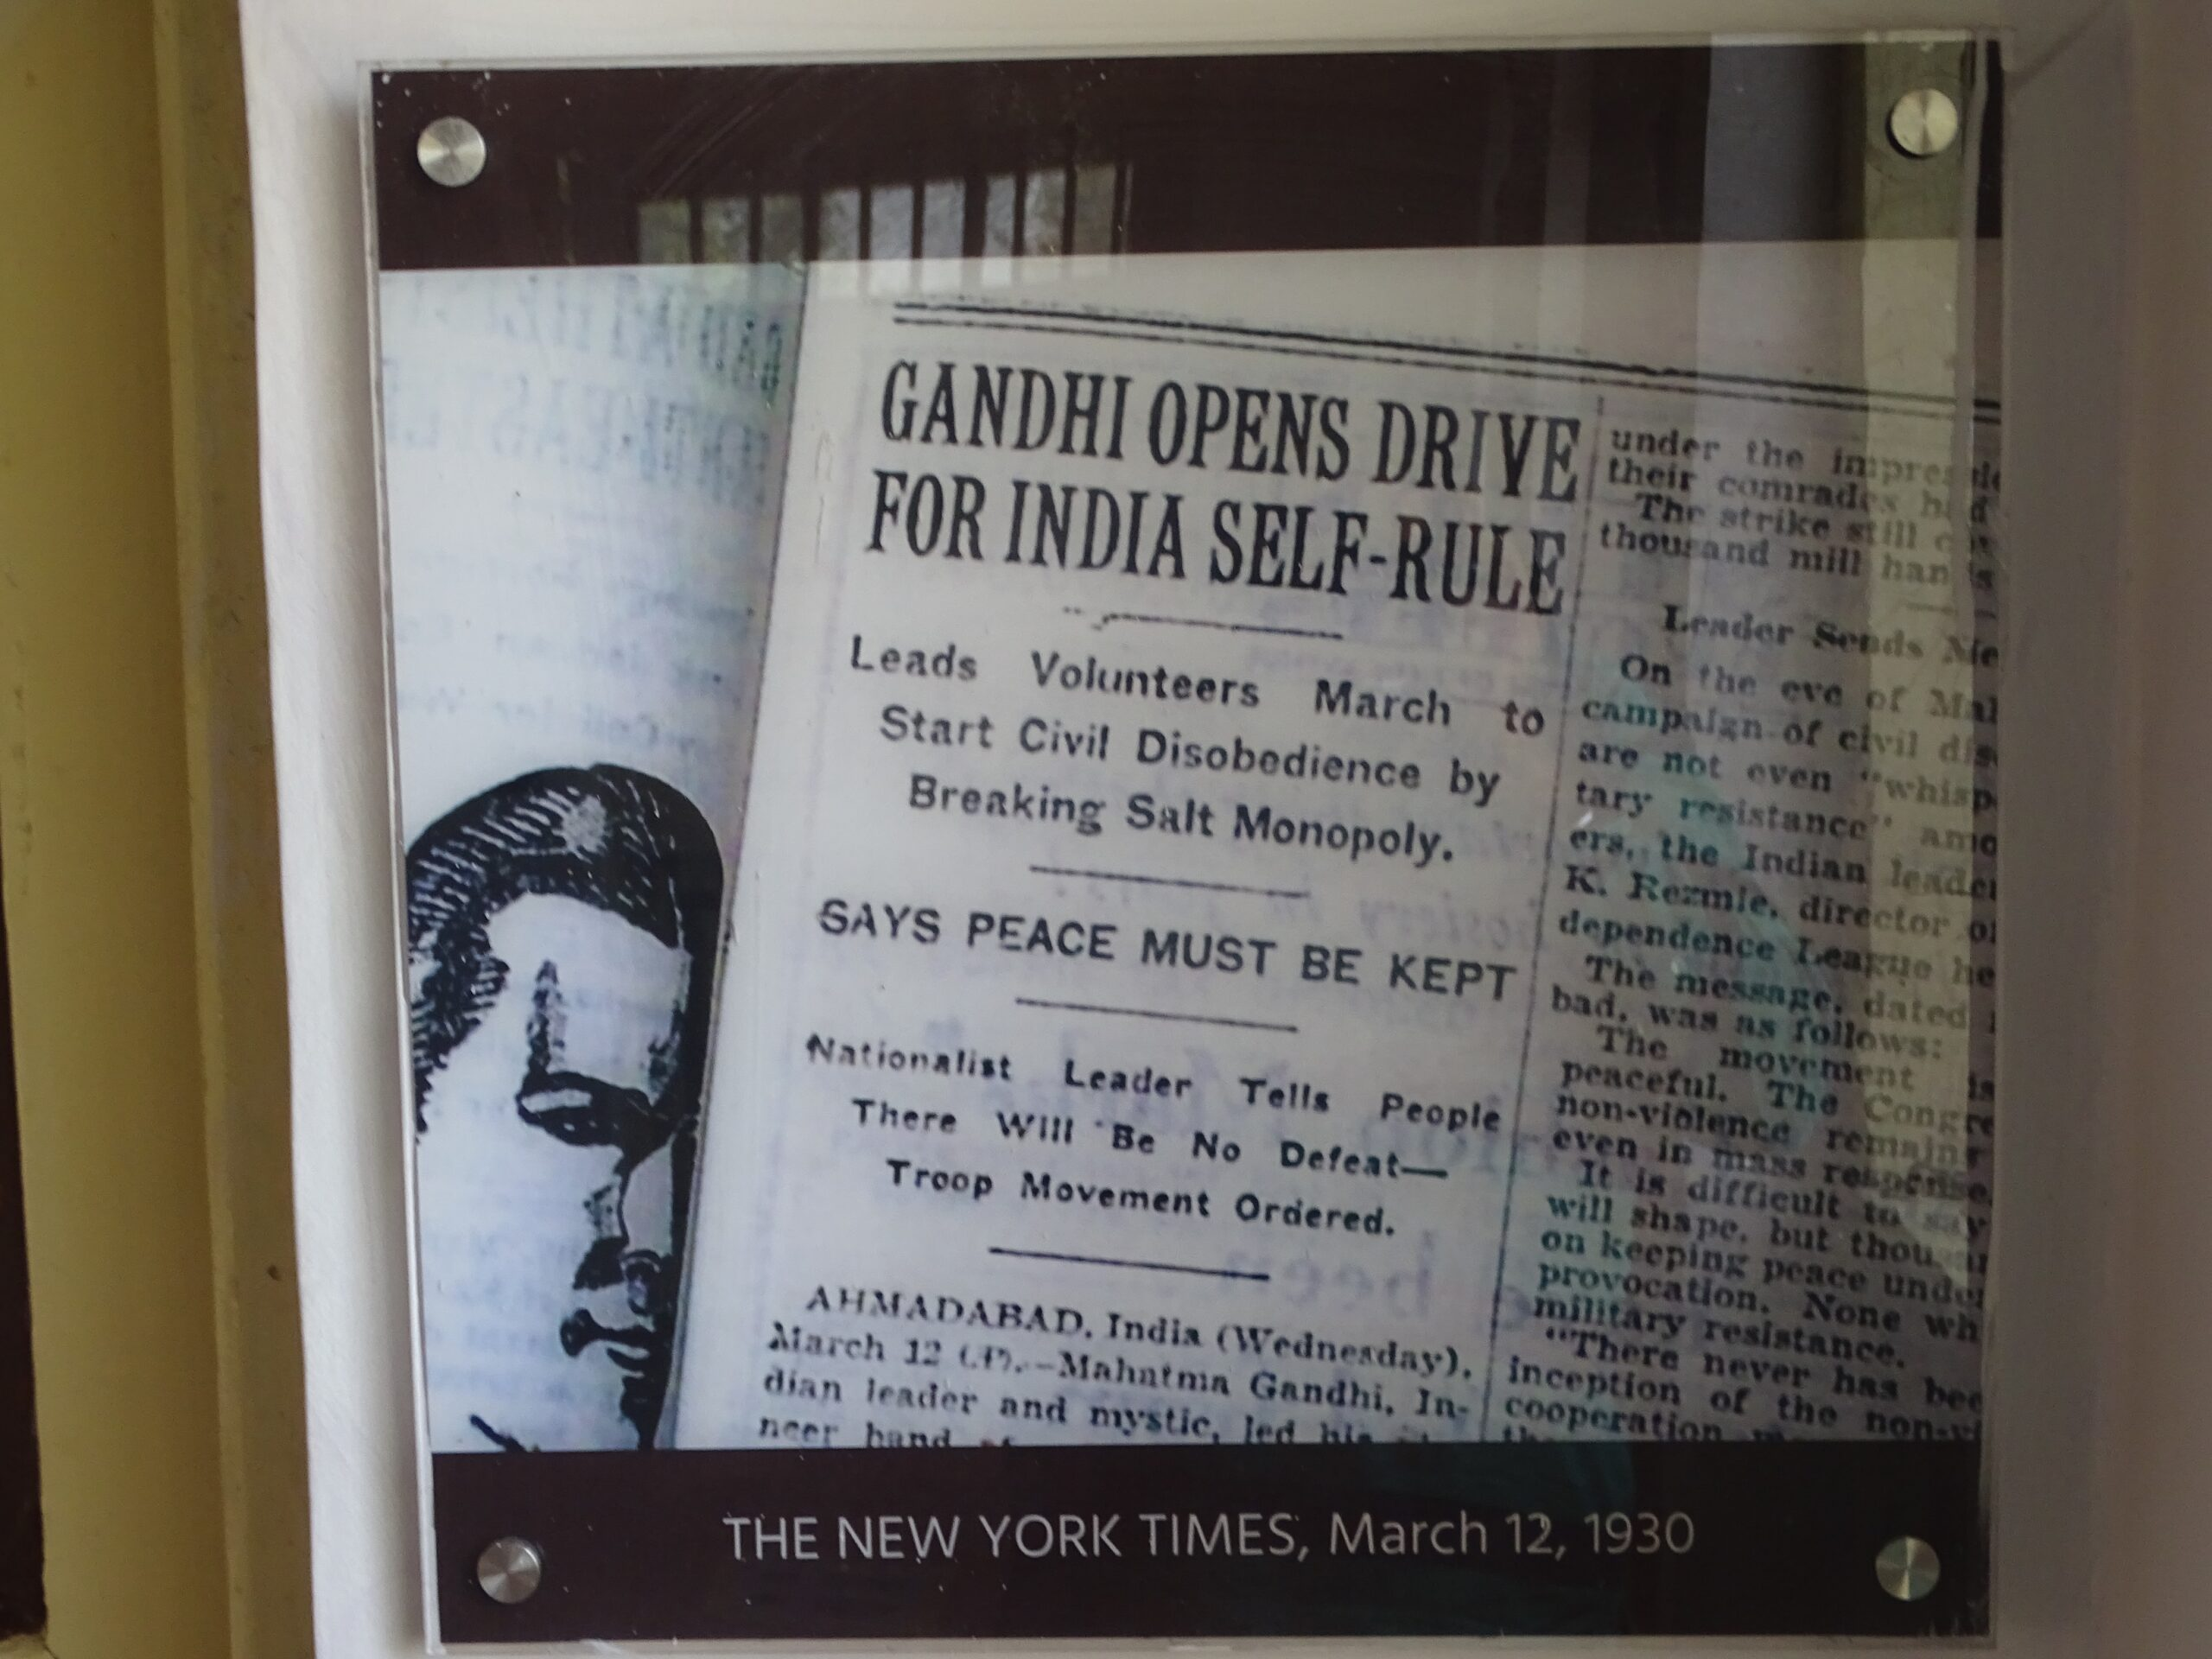 March 12, 1930 - The New York Times Article on Mahatma Gandhi